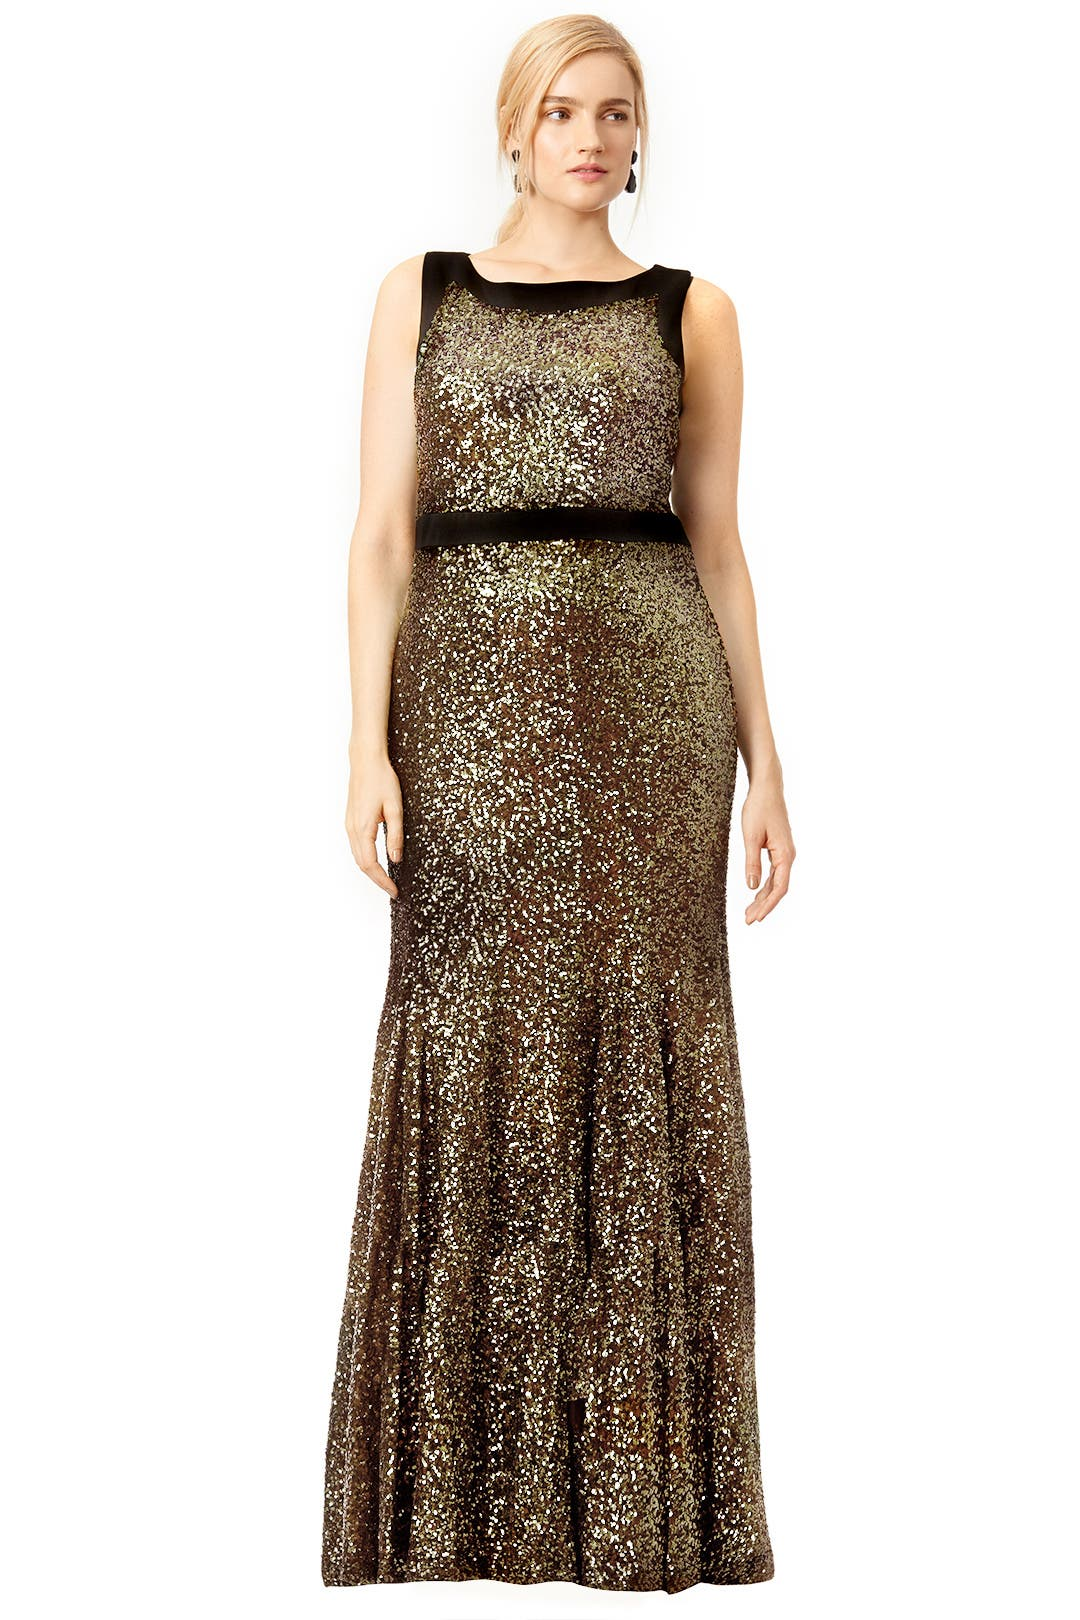 Gold Front and Center Gown by Badgley Mischka for $80 | Rent the Runway